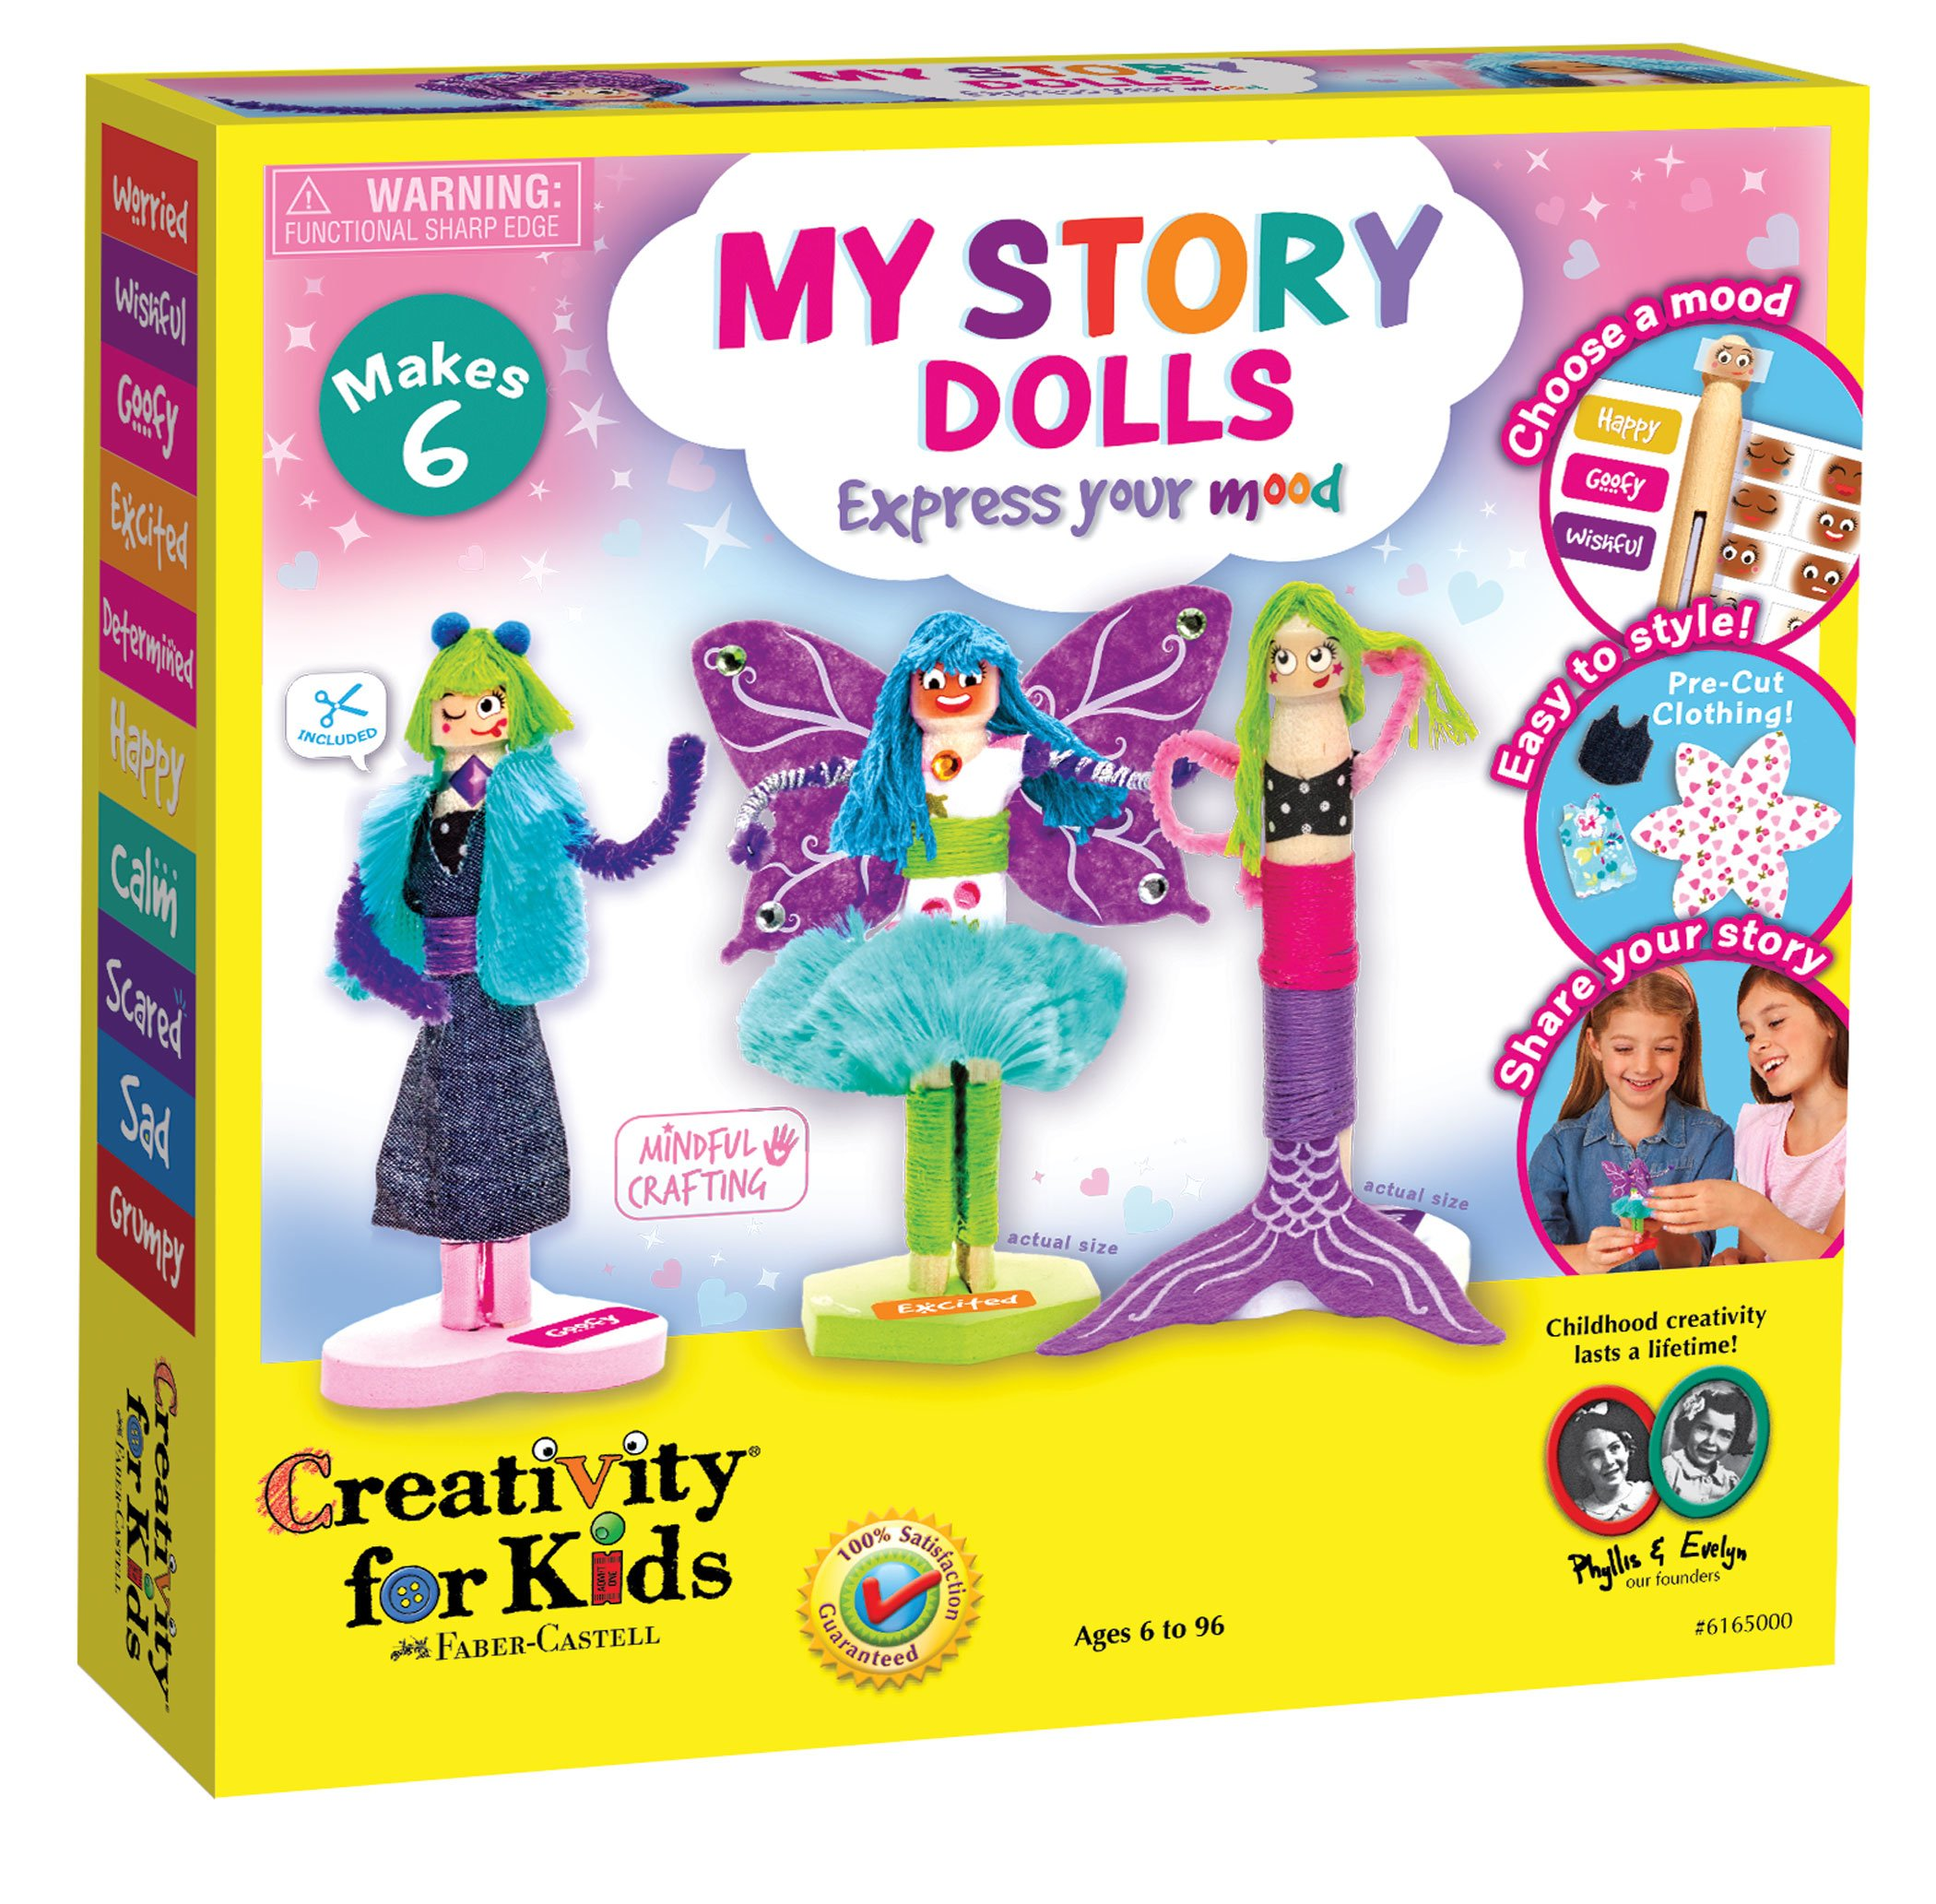 Creativity for Kids My Story Dolls - Create 6 Wooden Clothespin Dolls